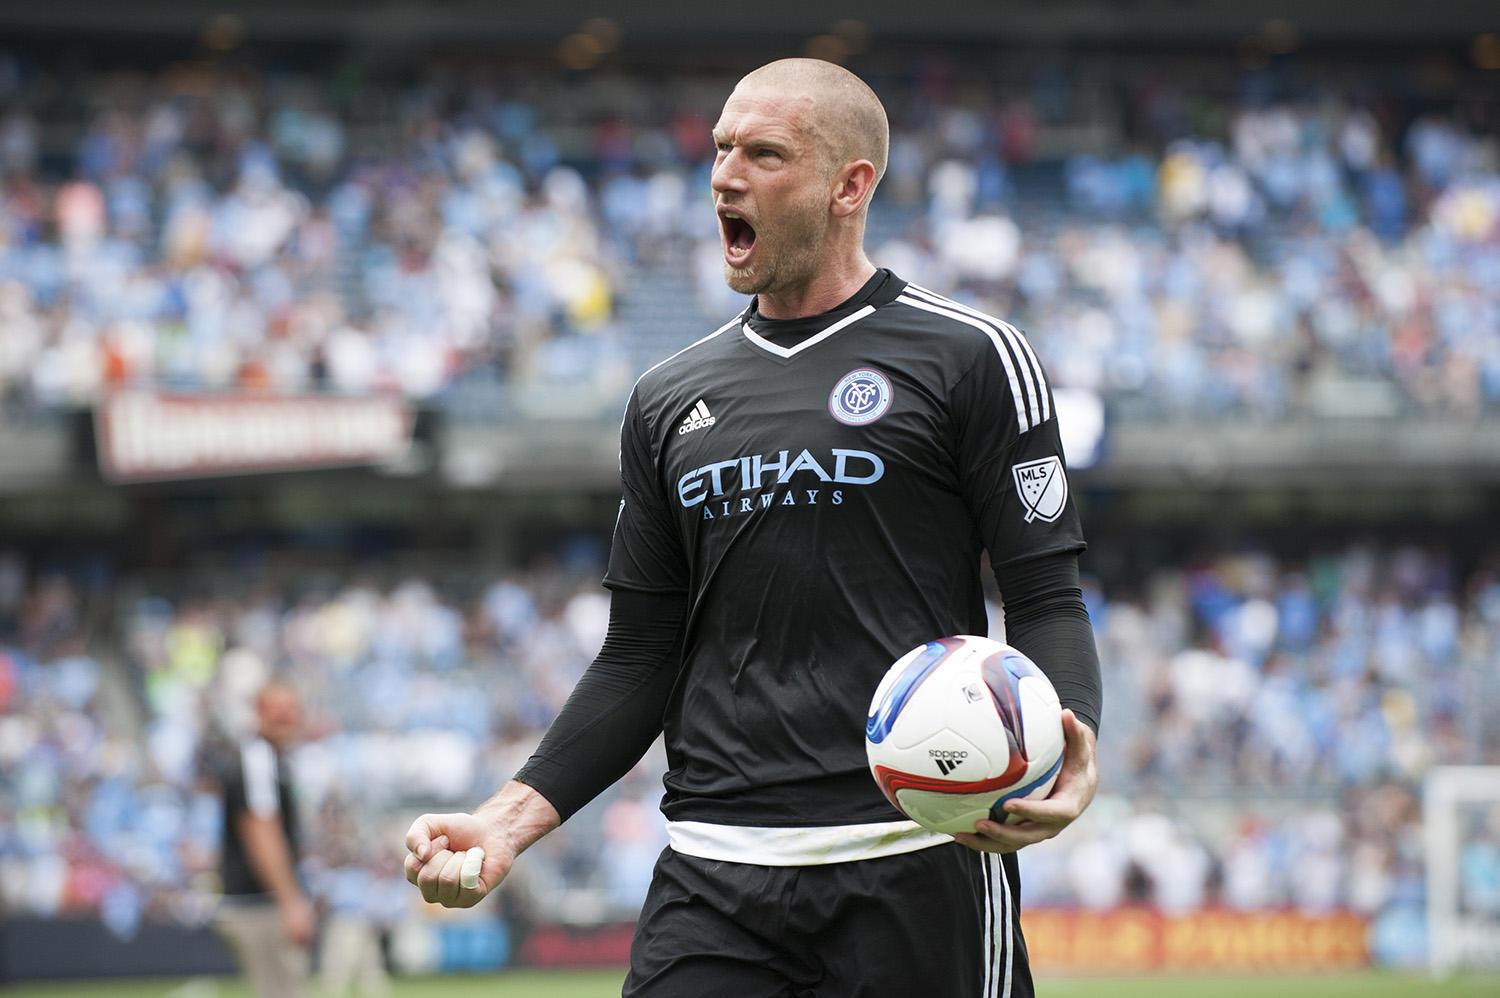 Josh Saunders was in goal back on  July 26, 2015 when New York City FC defeated Orlando City SC 5-3 at Yankee Stadium. Photo: Mike Lawrence